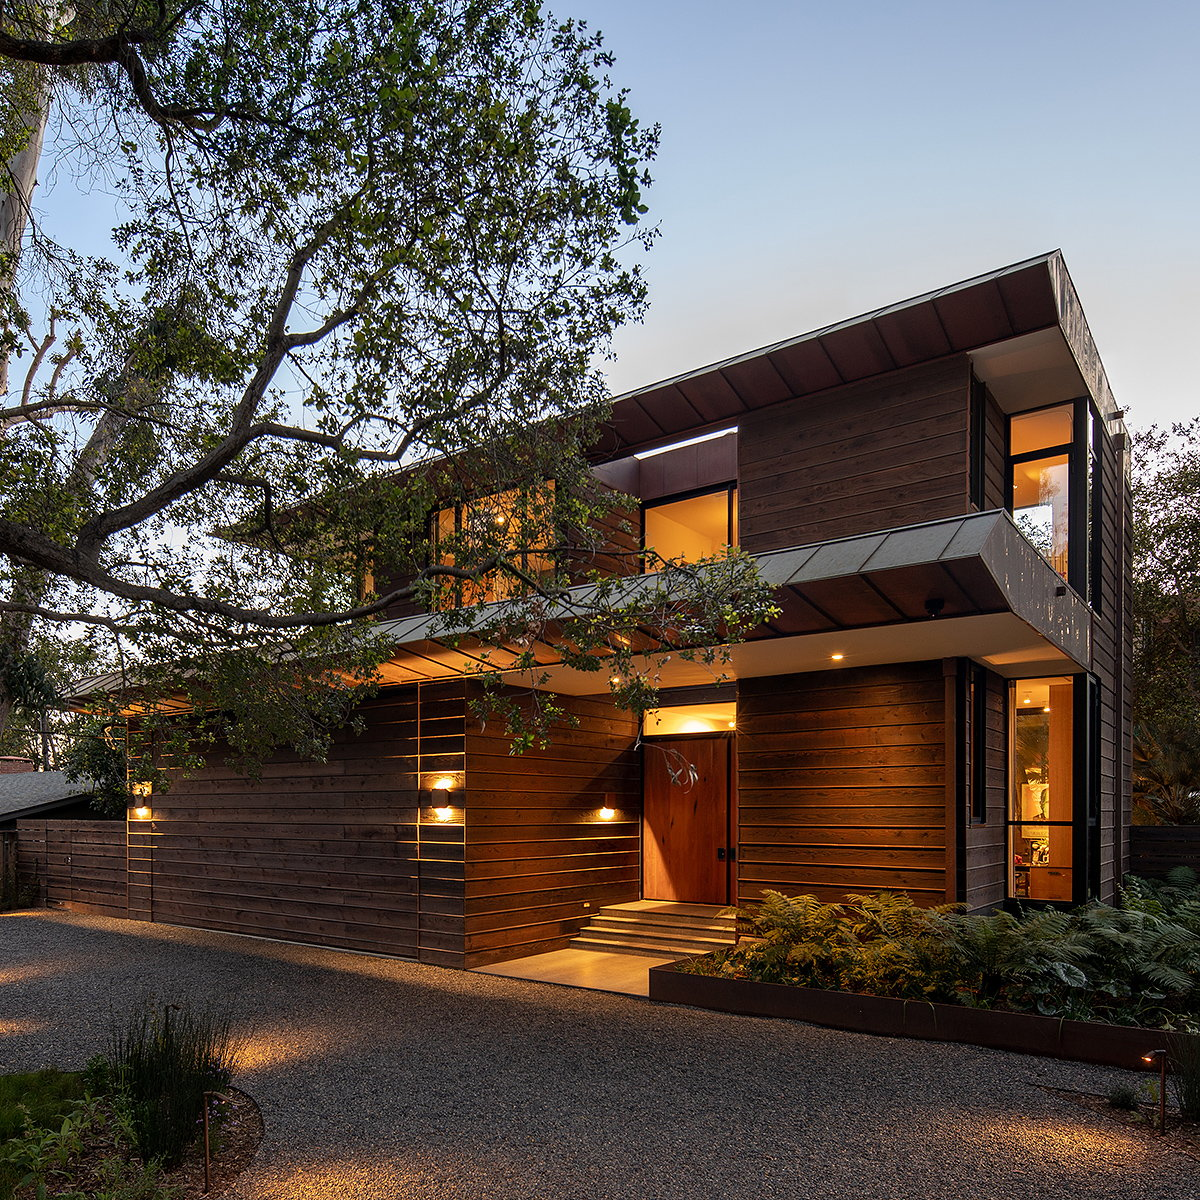 Conner and Perry Architects Designs Los Angeles Residence Celebrating Art and Nature